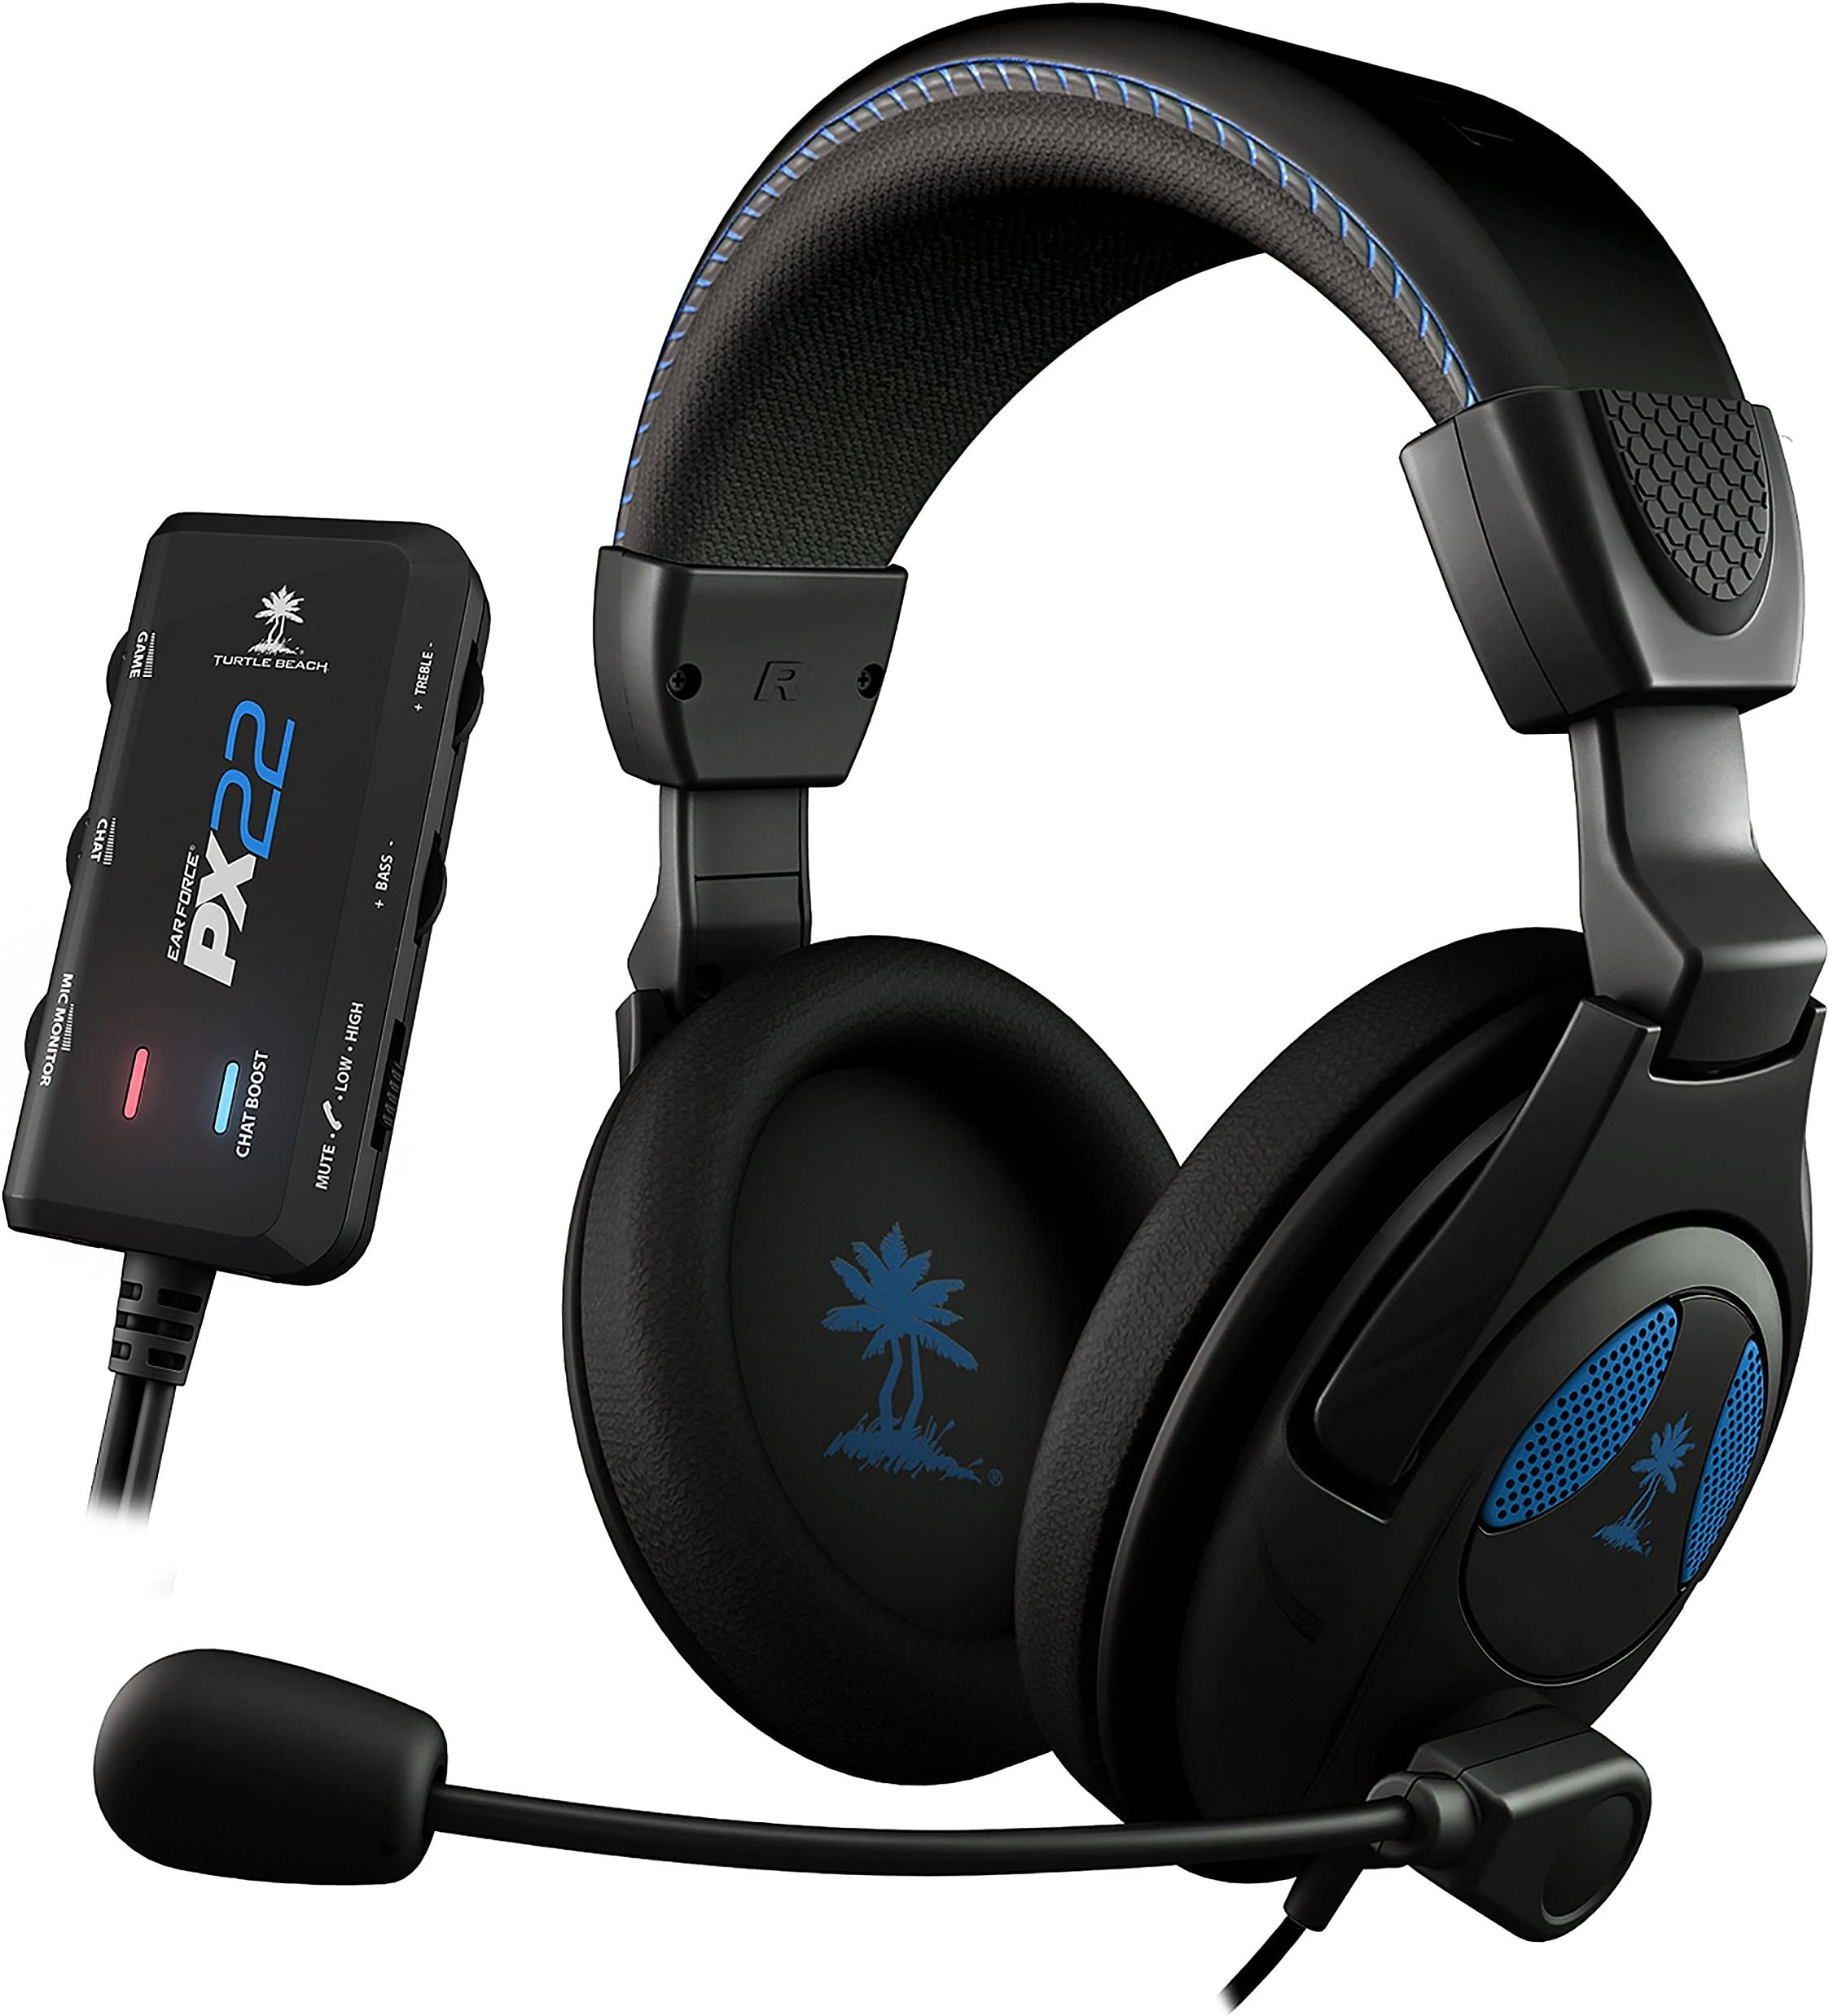 81WQFRdGswL._AC_ amazon com turtle beach ear force px22 universal amplified turtle beach px22 wiring diagram at mifinder.co